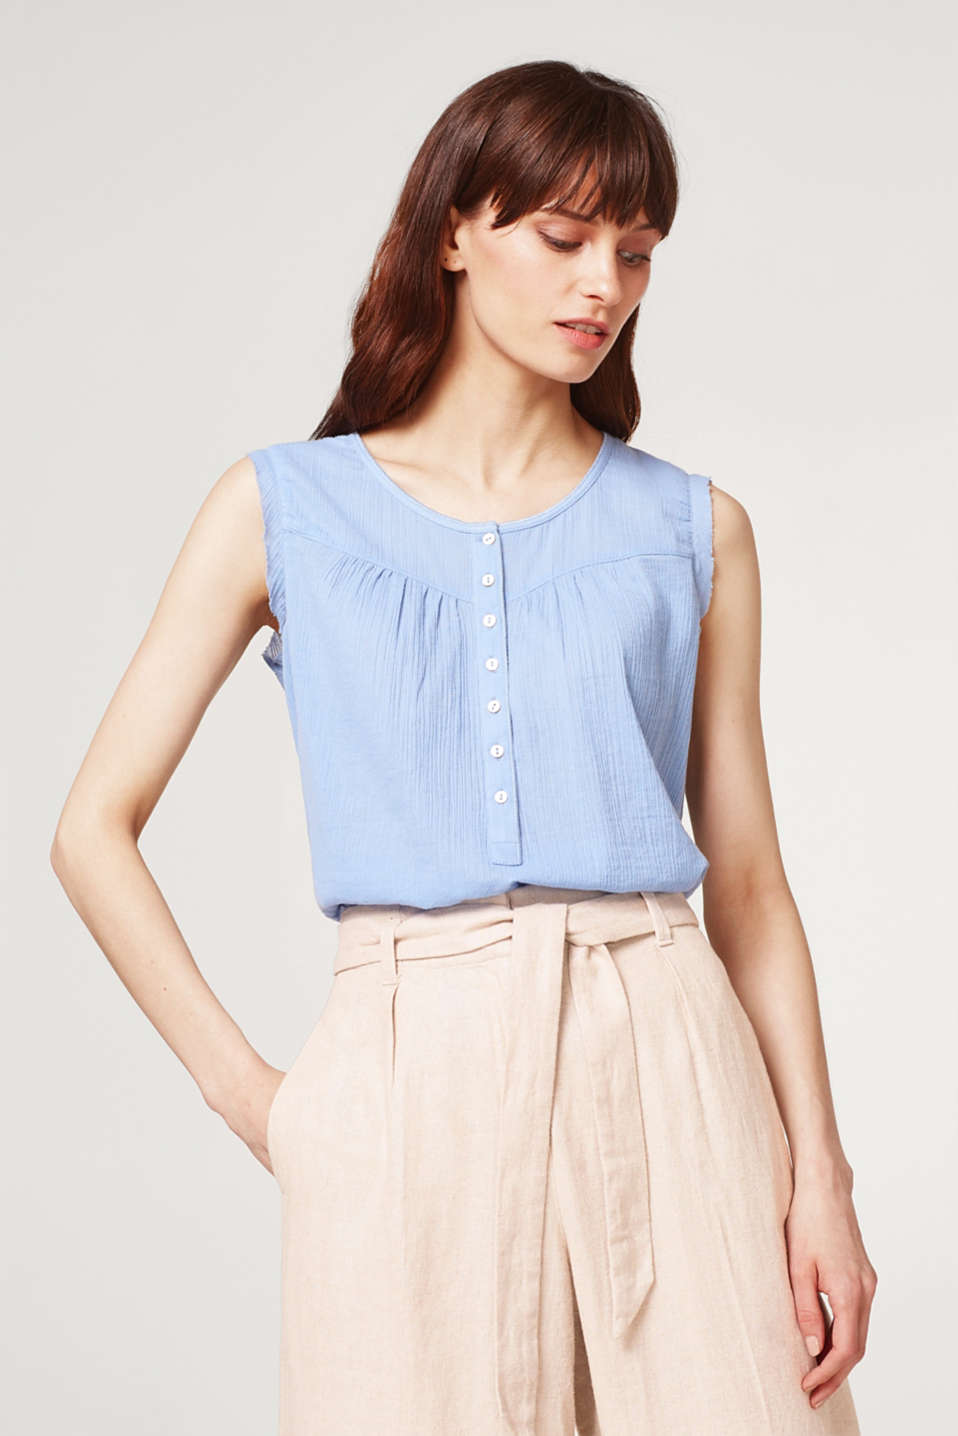 Esprit - Blouse top in a crinkle look, 100% cotton